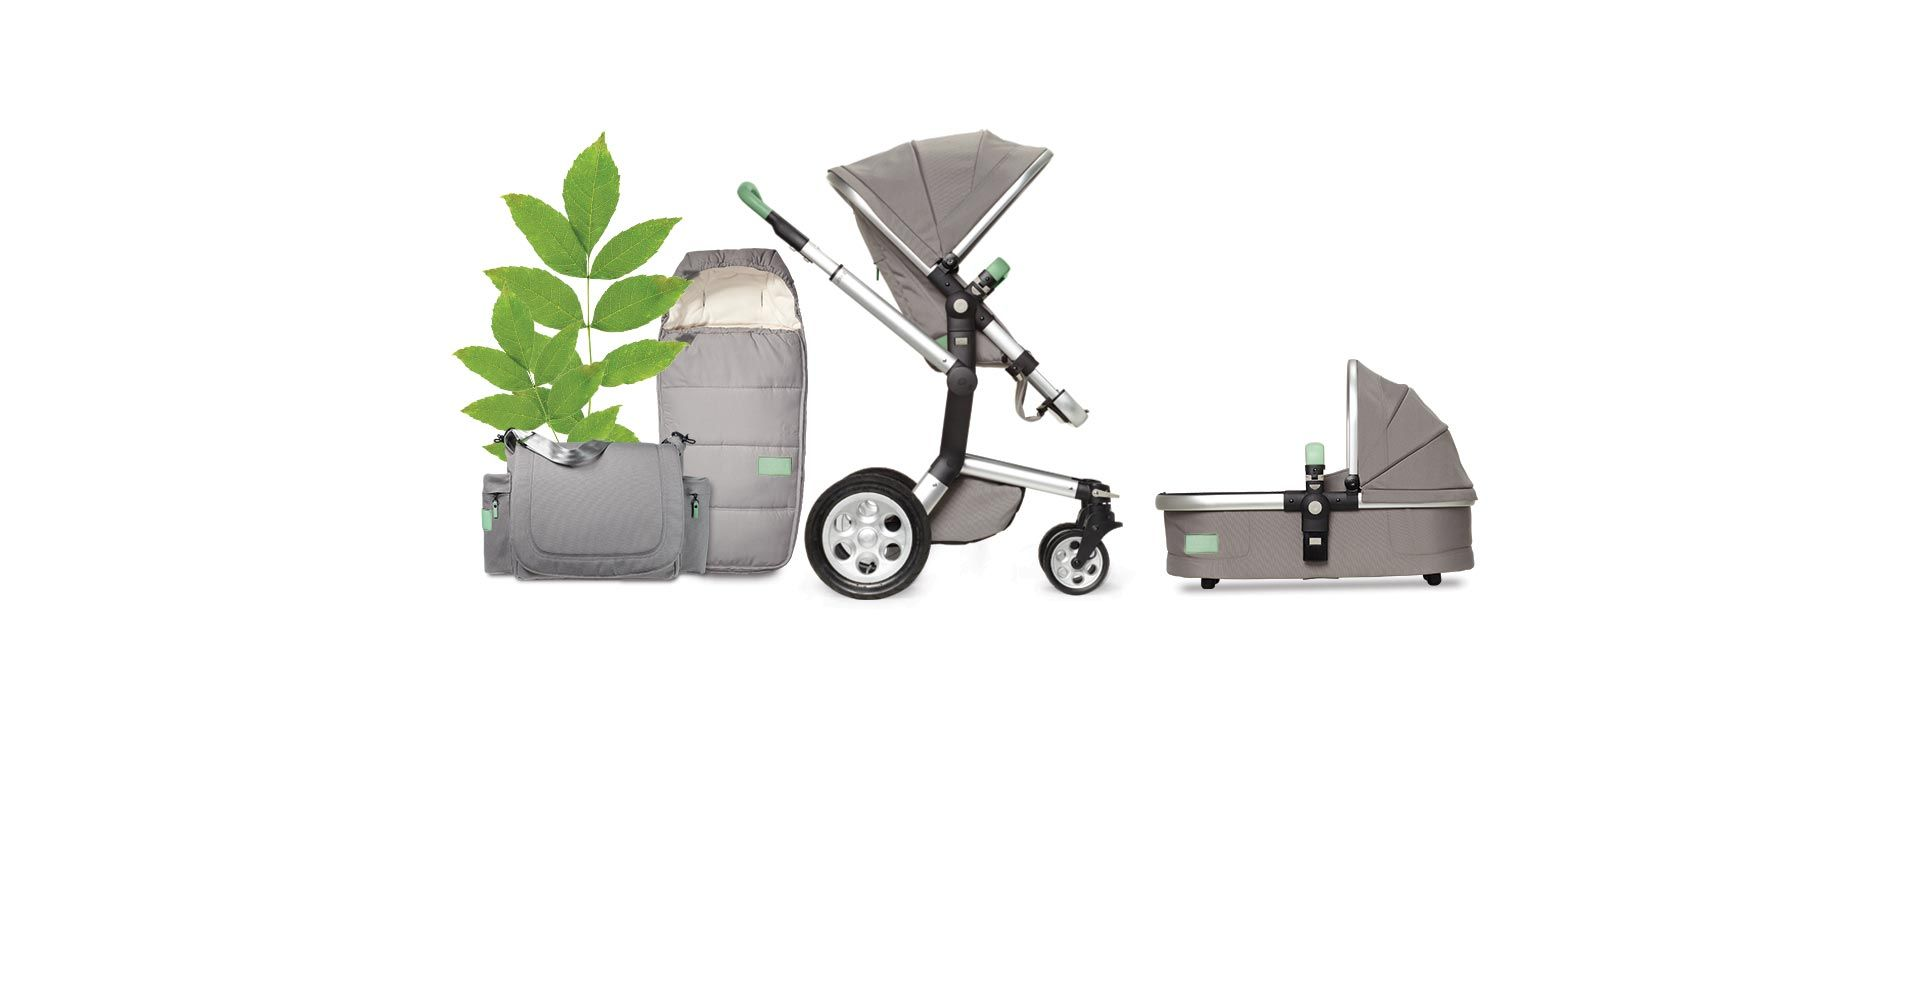 Joolz Pram Mothercare Joolz Day Tailor Pram 22 Different Leather Colour Options